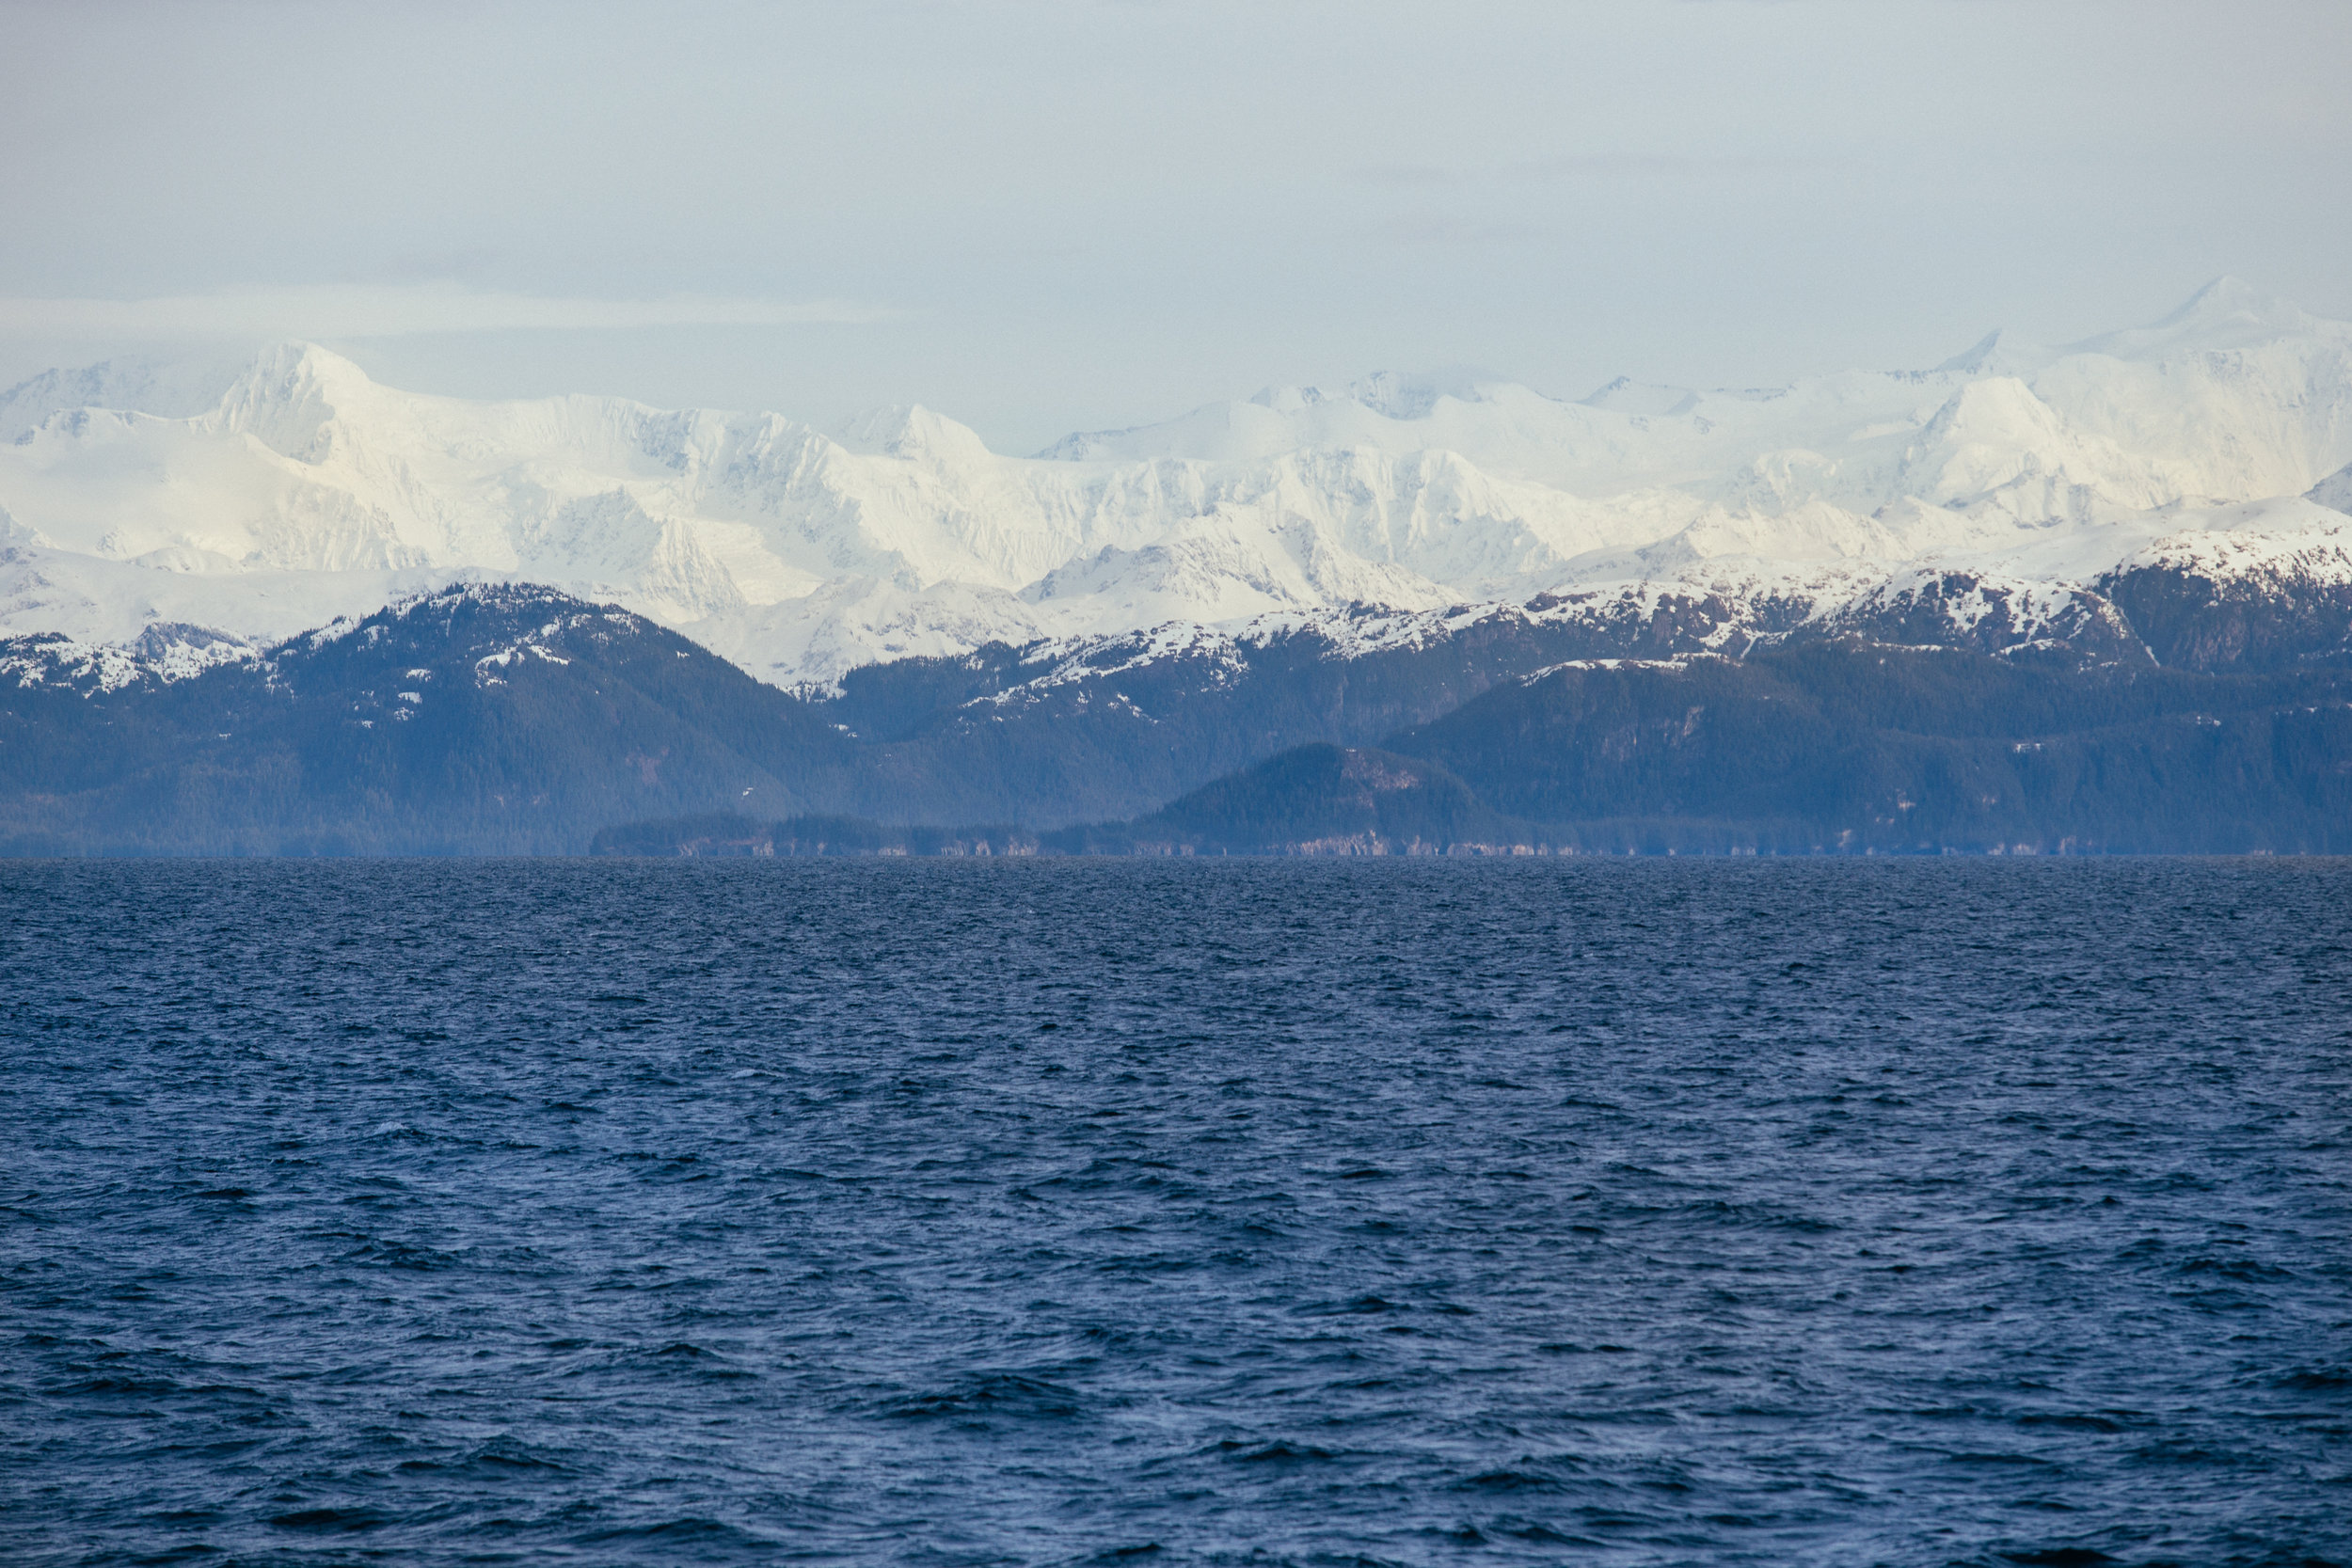 I want to heliski out there...